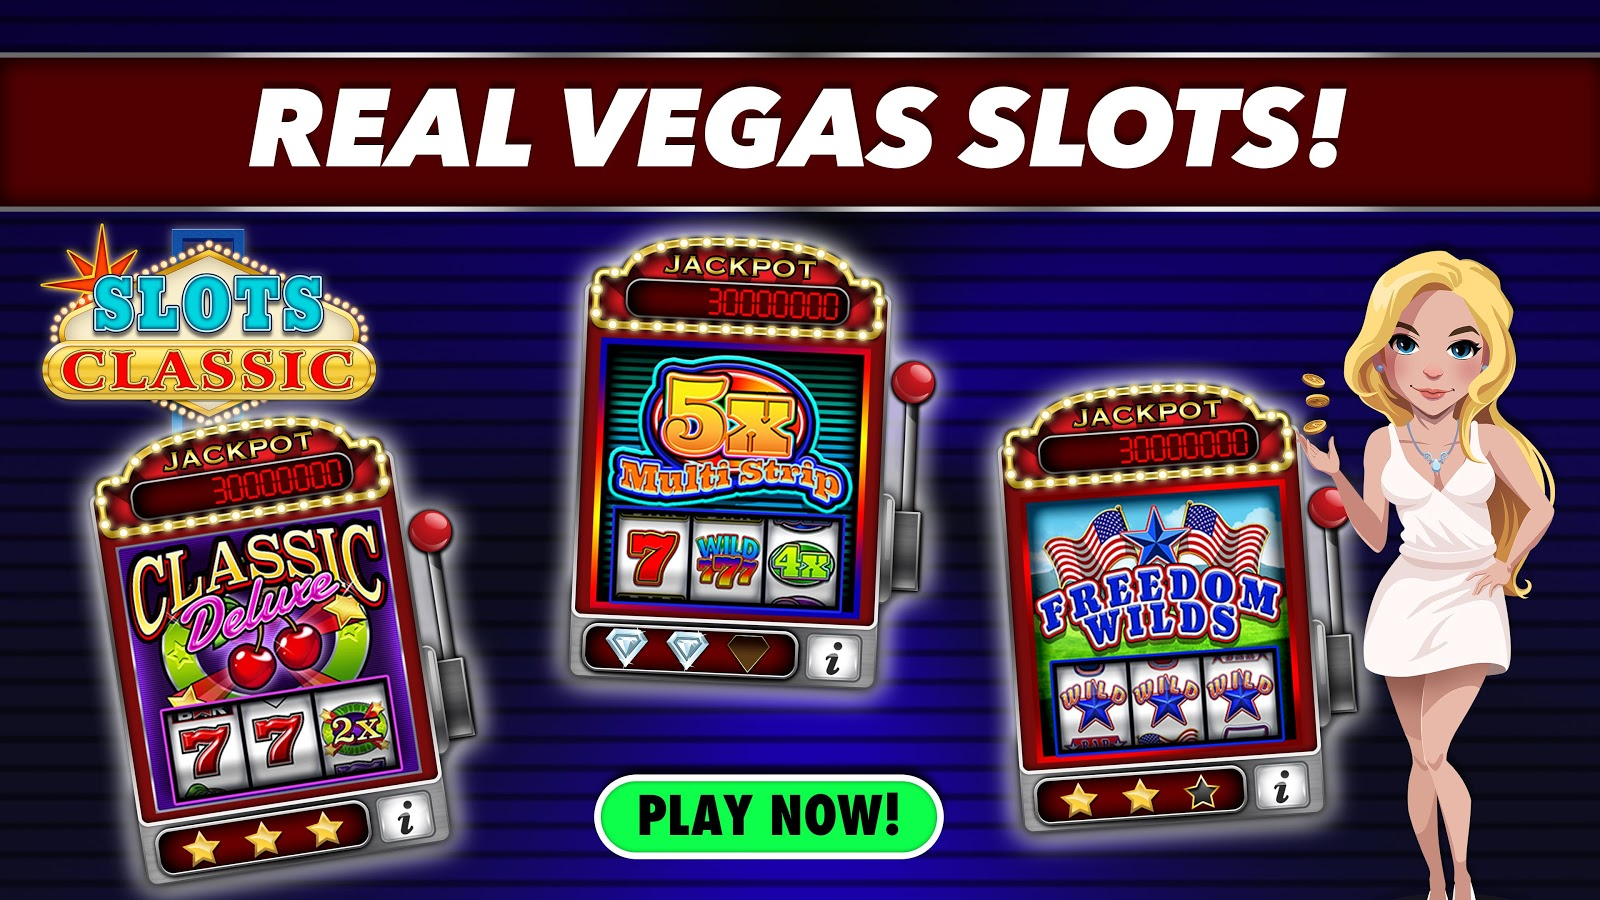 The Family II Slot Machine - Play for Free or Real Money